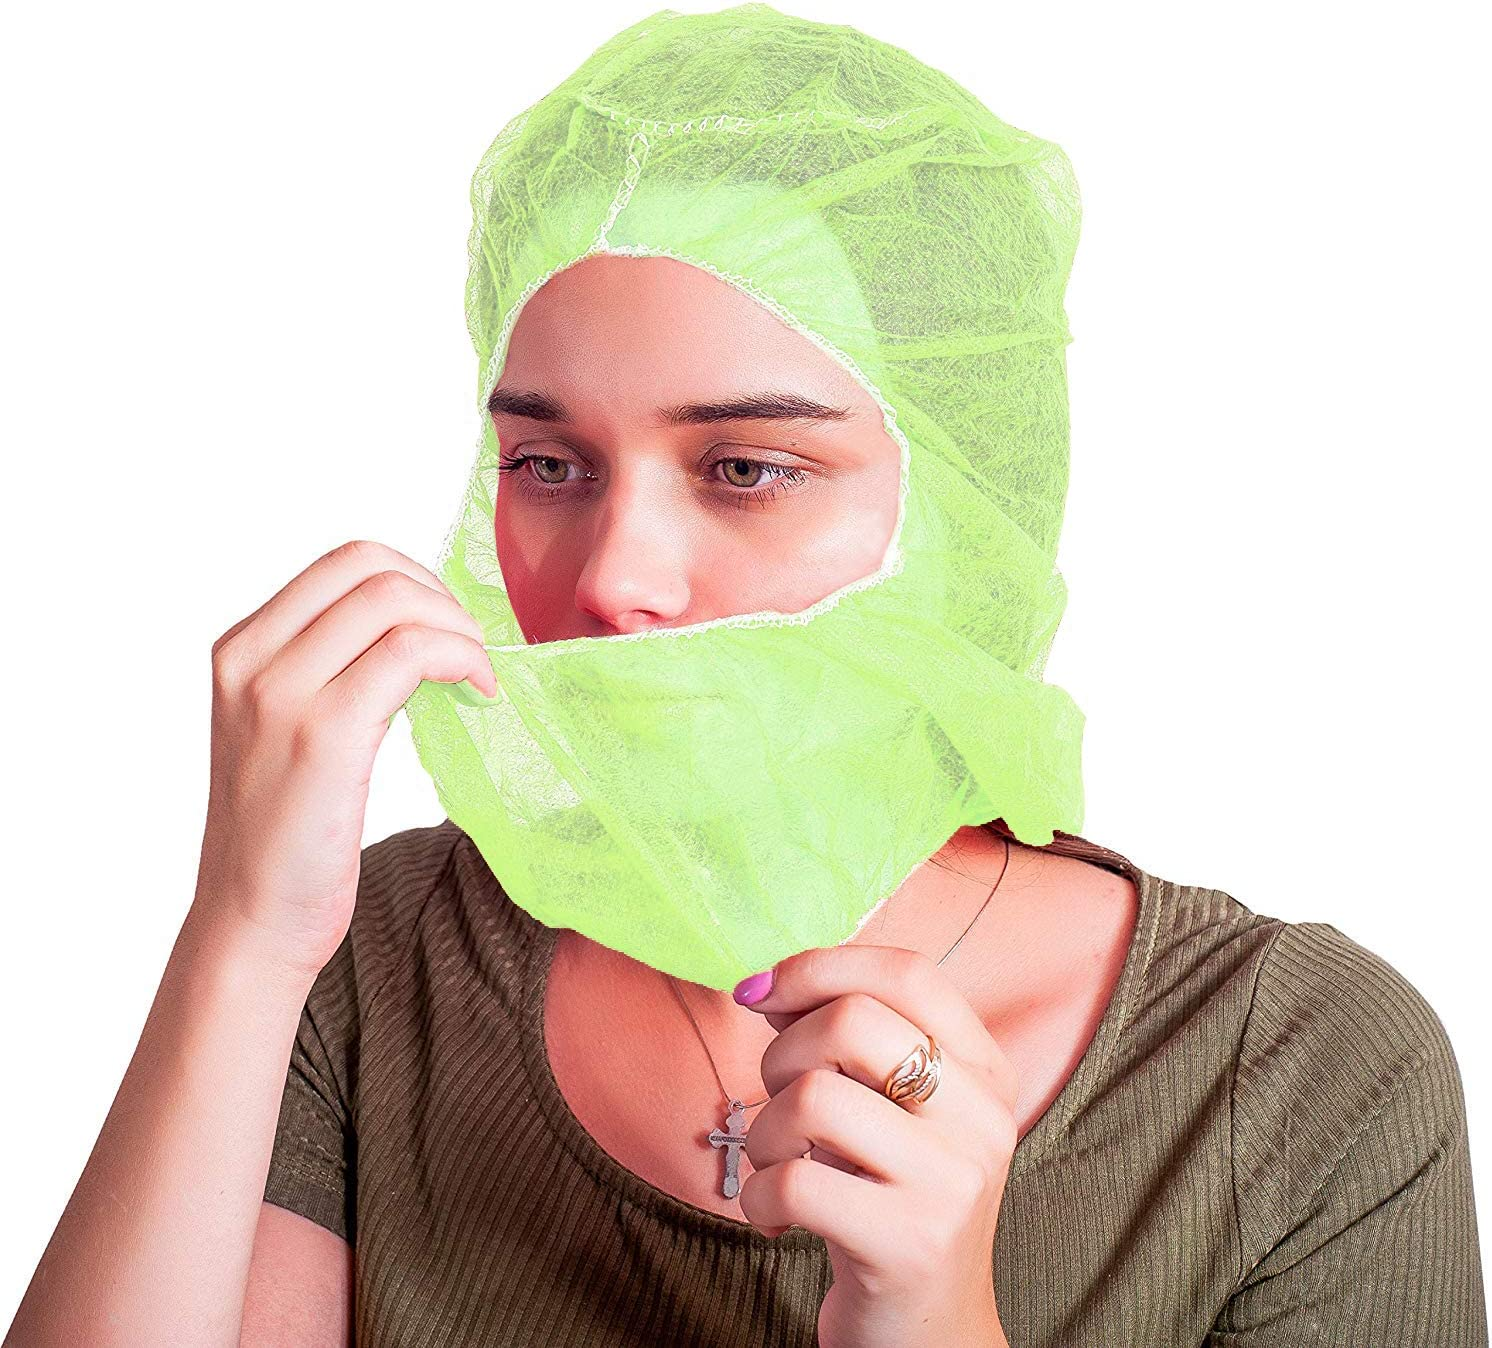 100 Pack Polypropylene Hooded Caps. Green Non Woven Hoods with Elastic Closure. Disposable Bouffant Hoods. Unisex Hair Covers for Food Service, Industrial Use. Breathable, Lightweight. One Size.